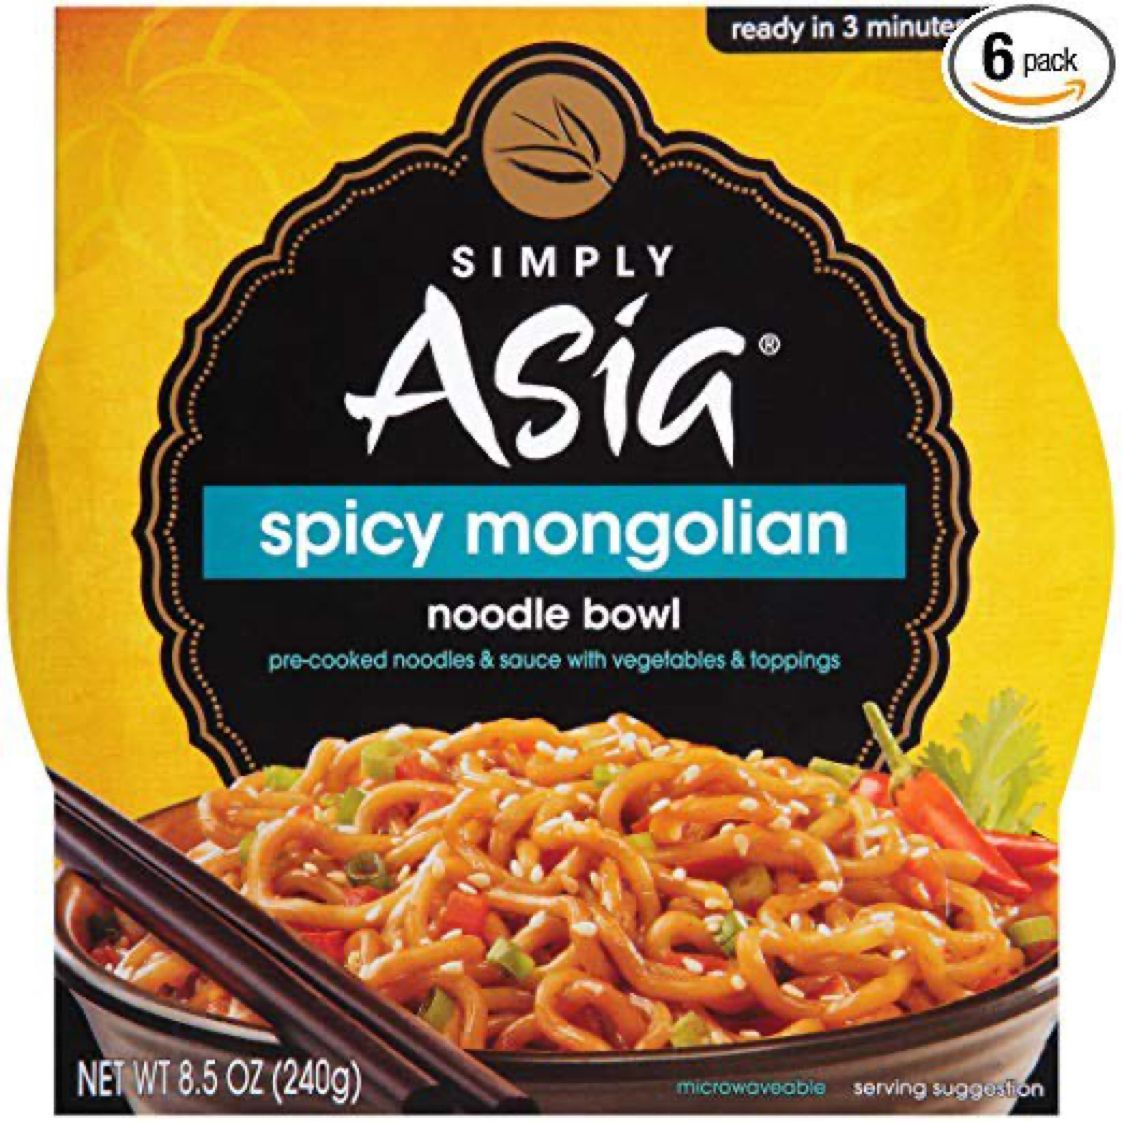 Pack of 6 - Simply Asia Spicy Mongolian Noodle Bowls    $12.48 with Free Prime Shipping   #steals #deals #stealsanddeals